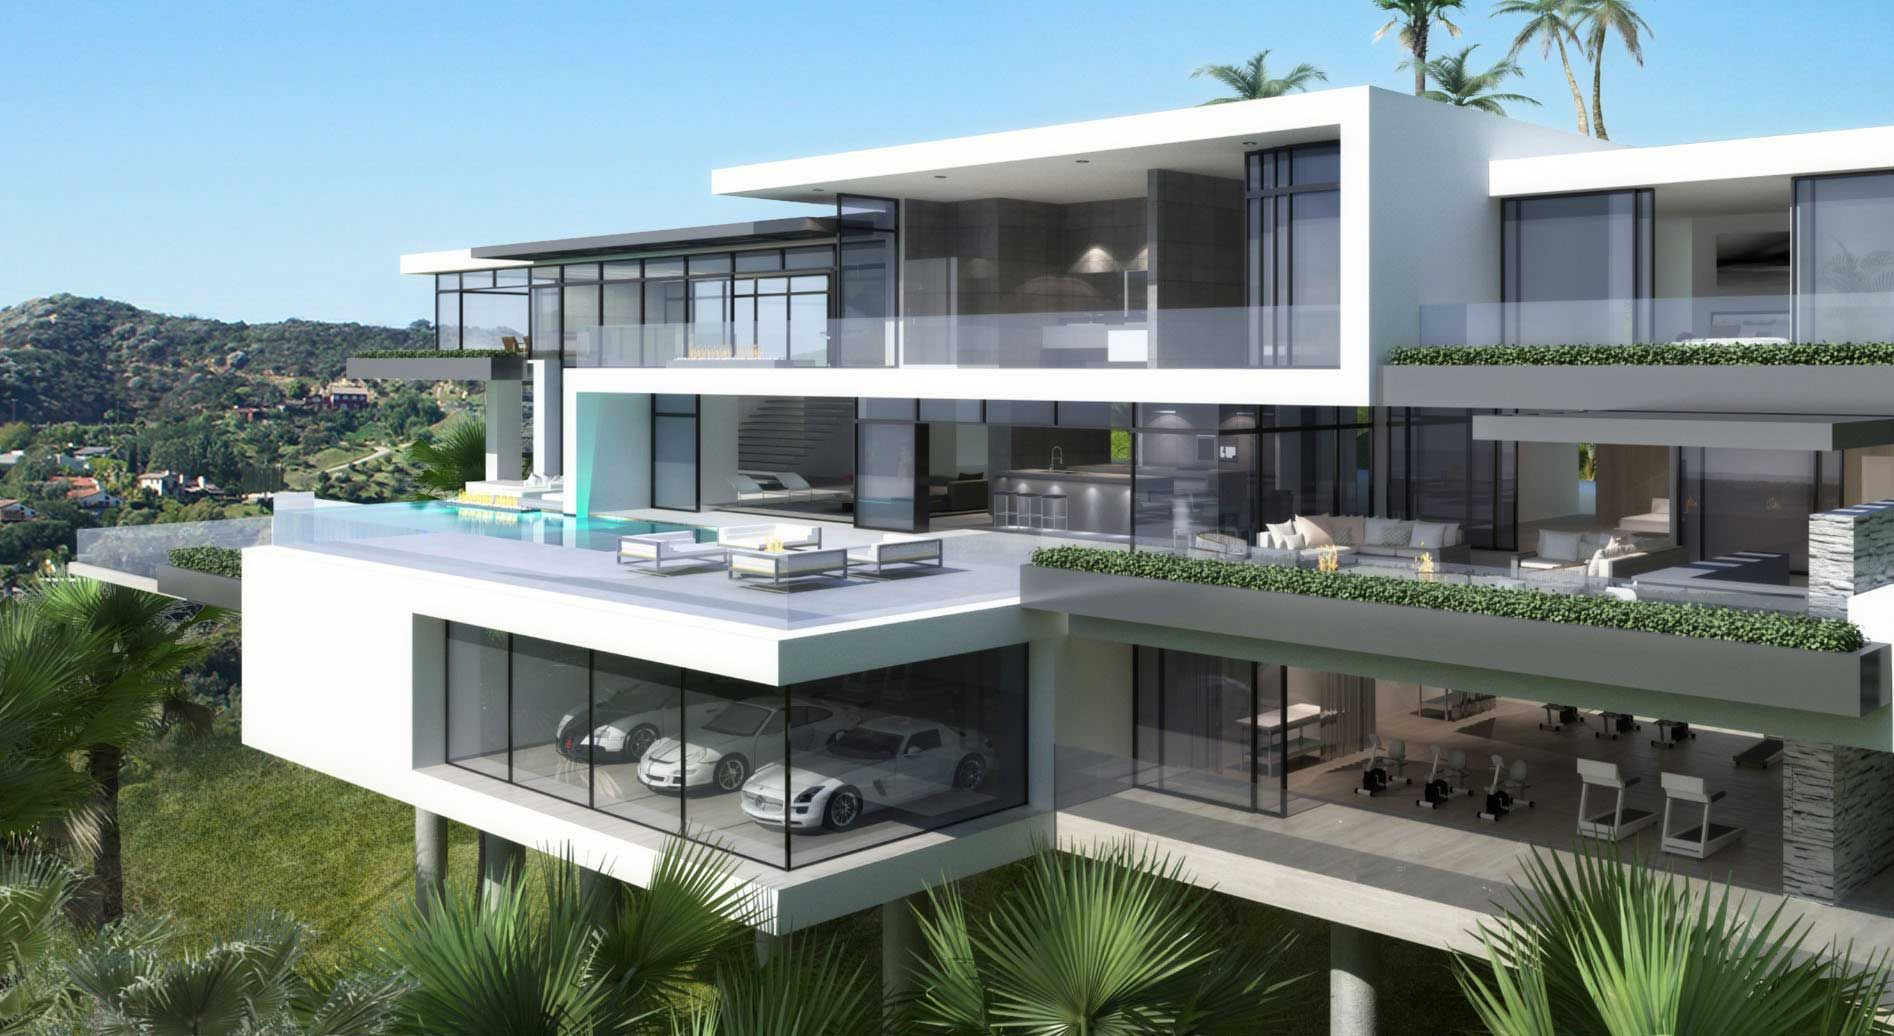 Luxury Ultramodern Mansions On Sunset Plaza Drive In Los Angeles |  Http://www